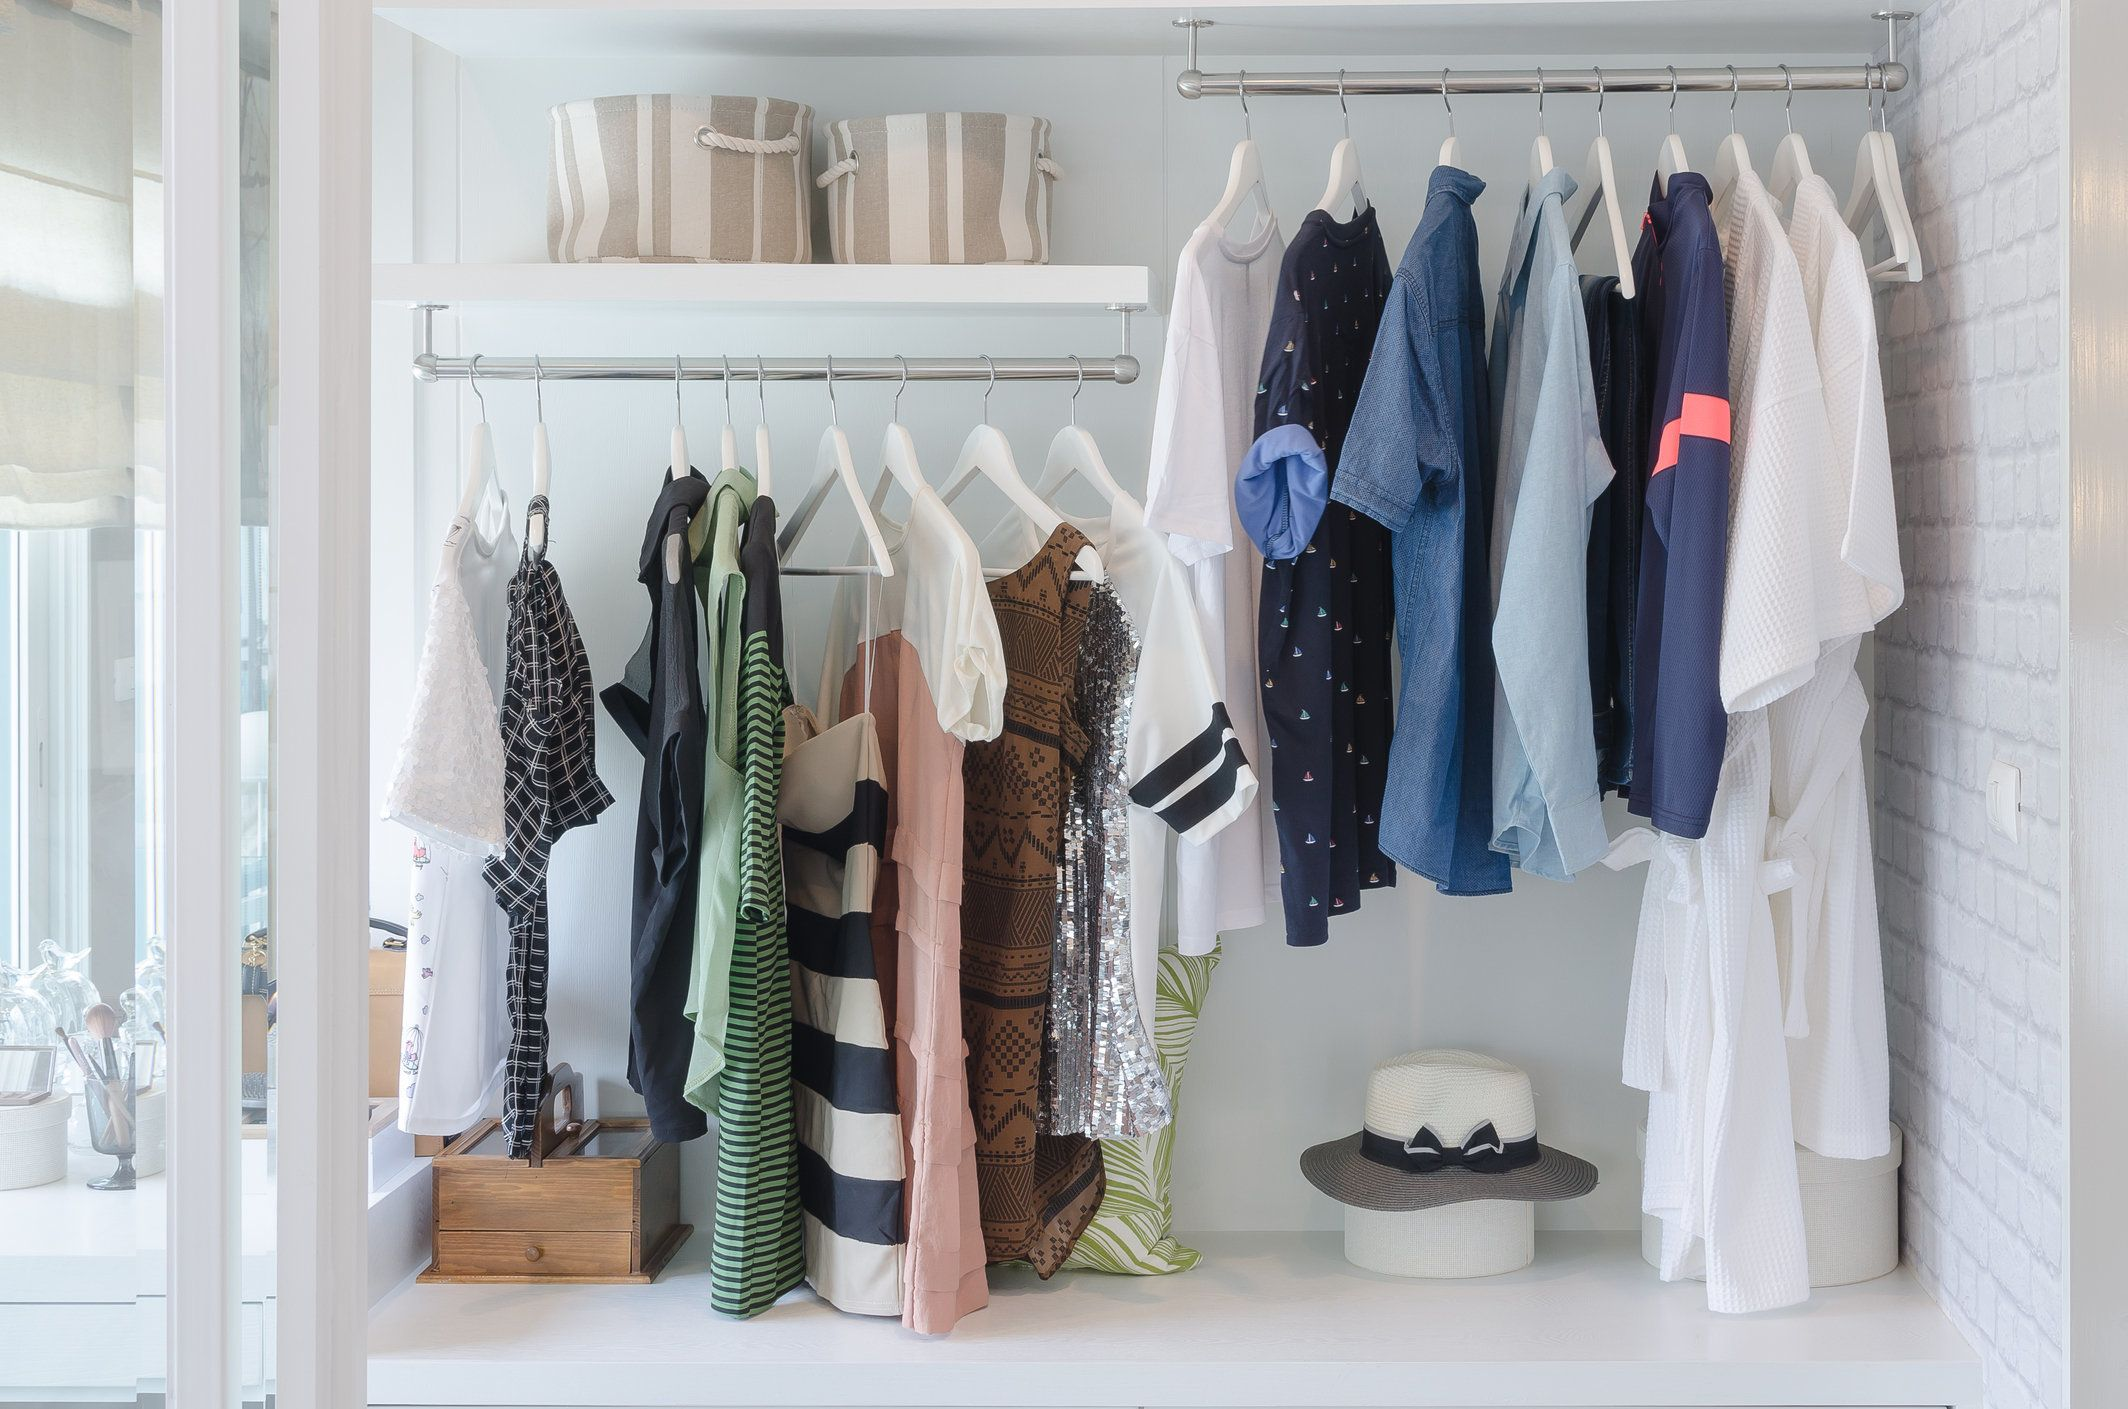 6 Budget Friendly Ways To Organize A Small Closet